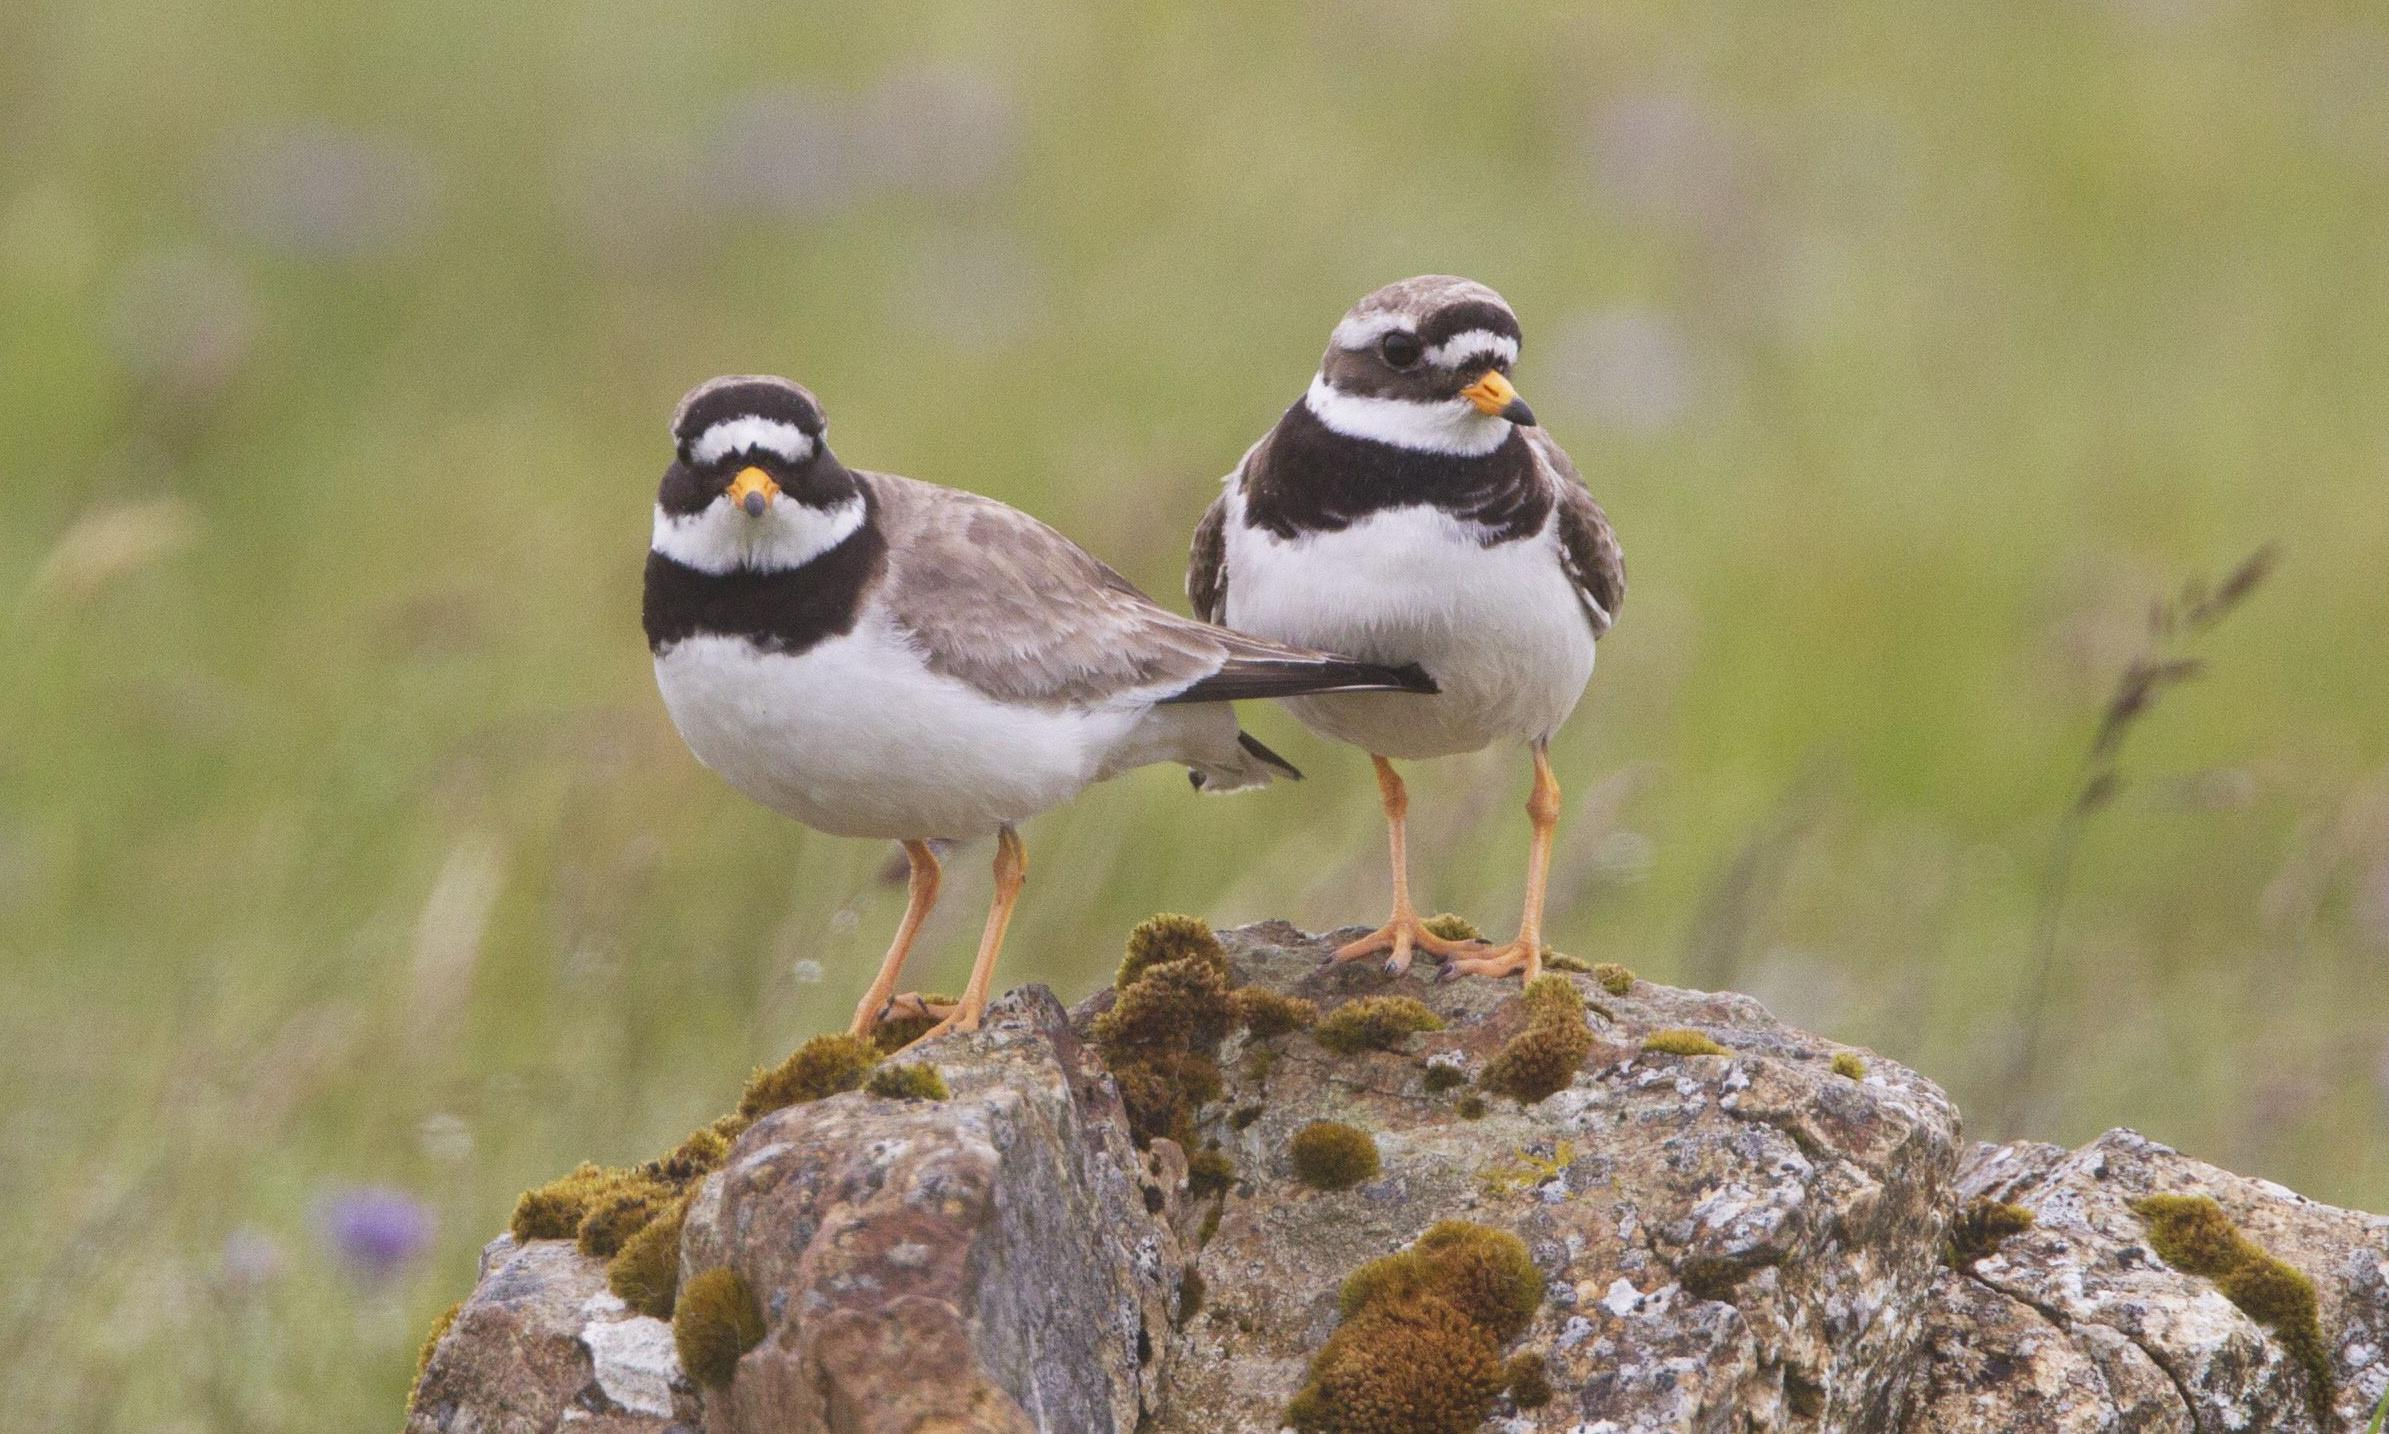 Birdwatch: shore things – getting close to waders on their migration